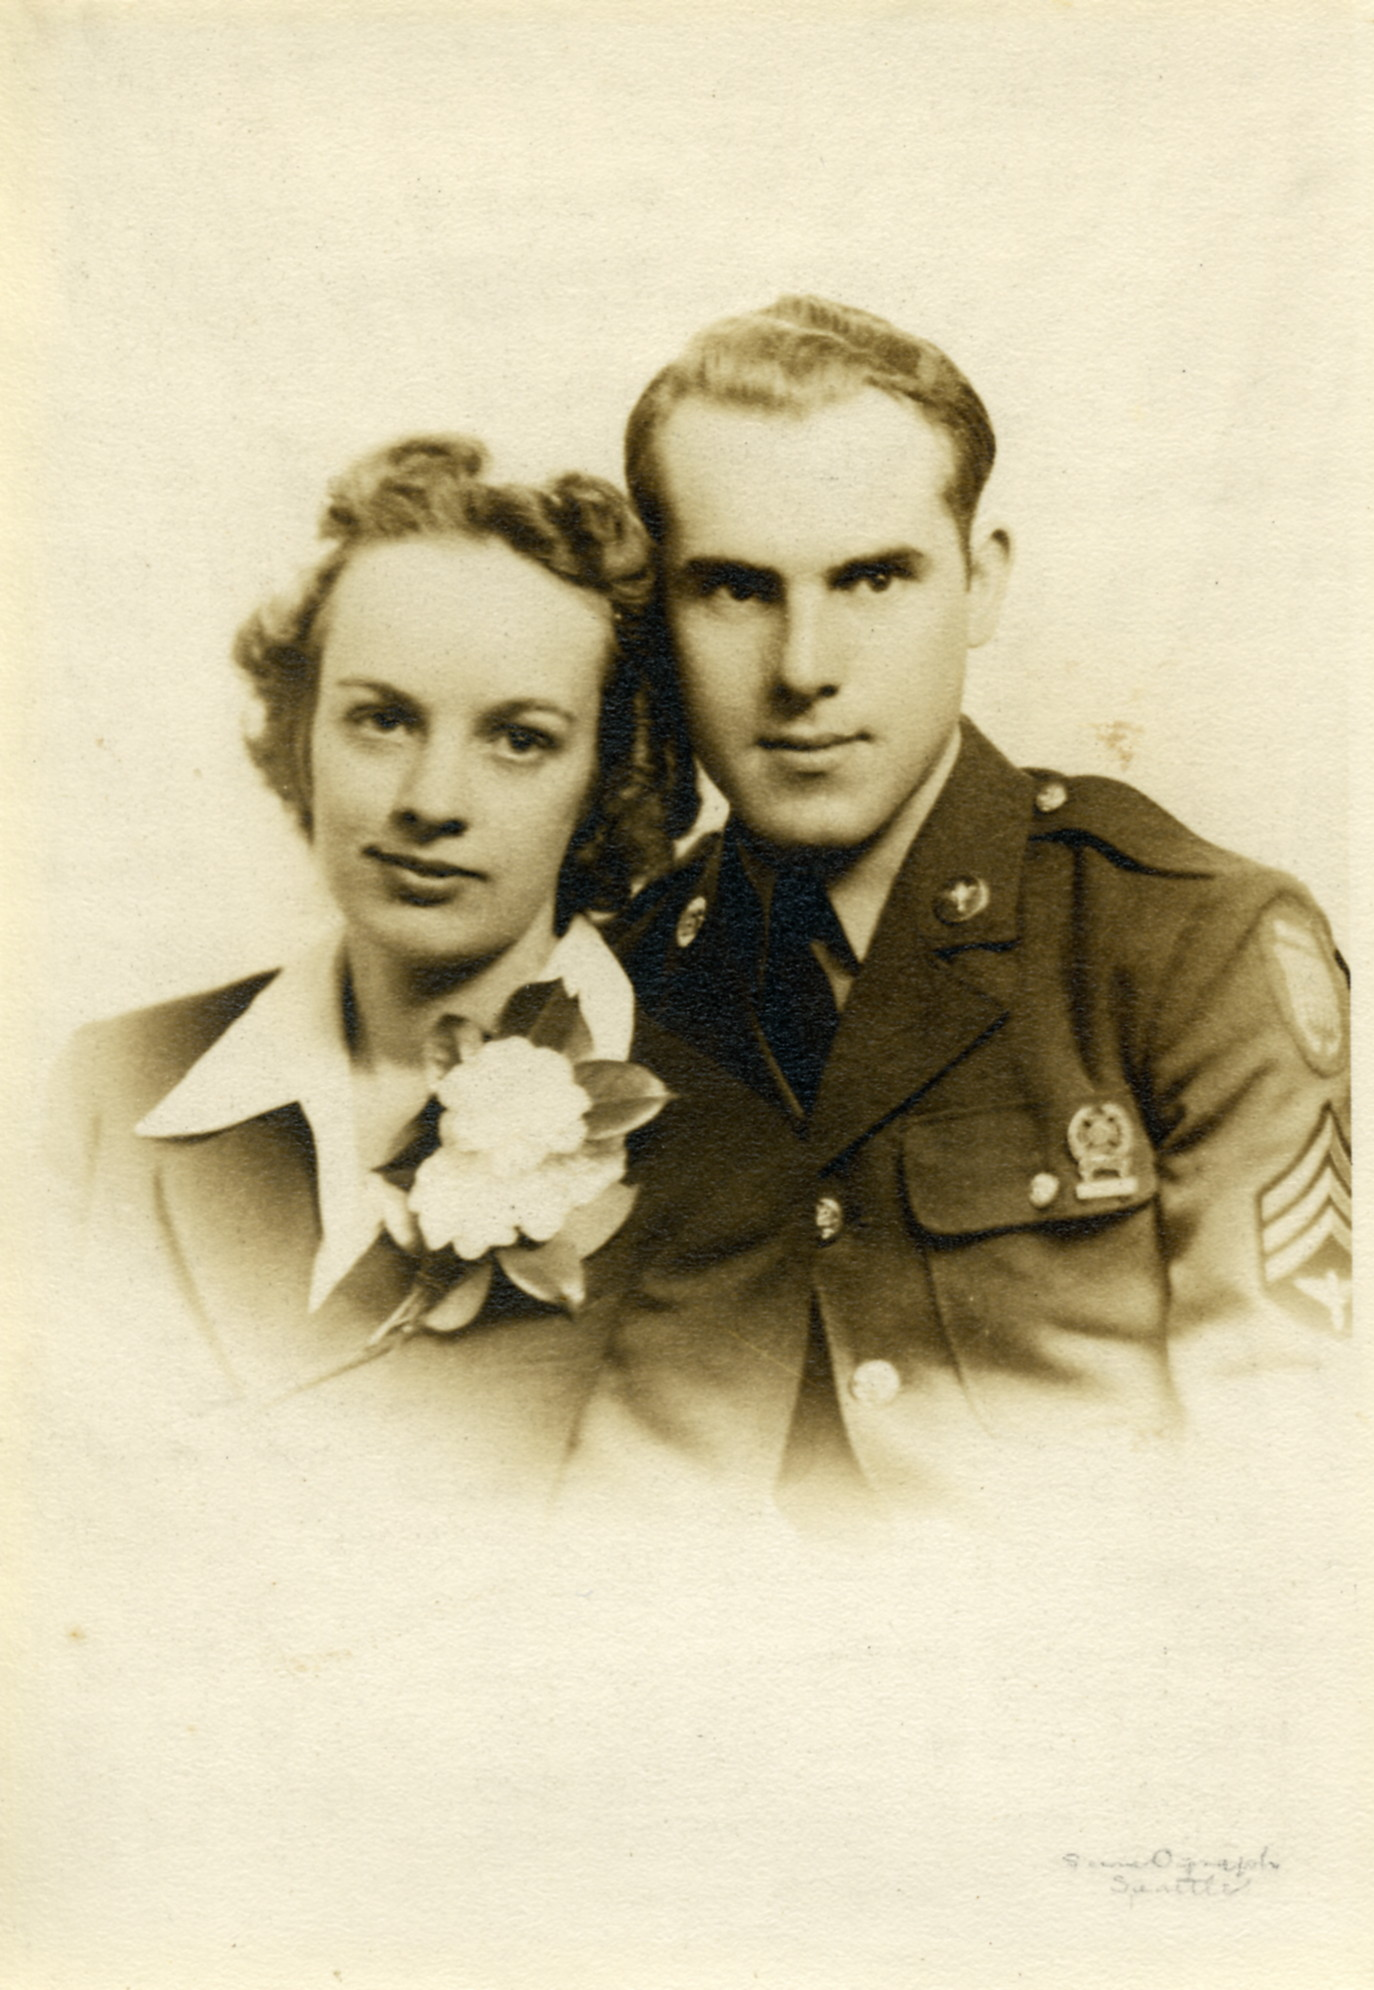 Ed and Dolores Ardisson, April 5, 1942